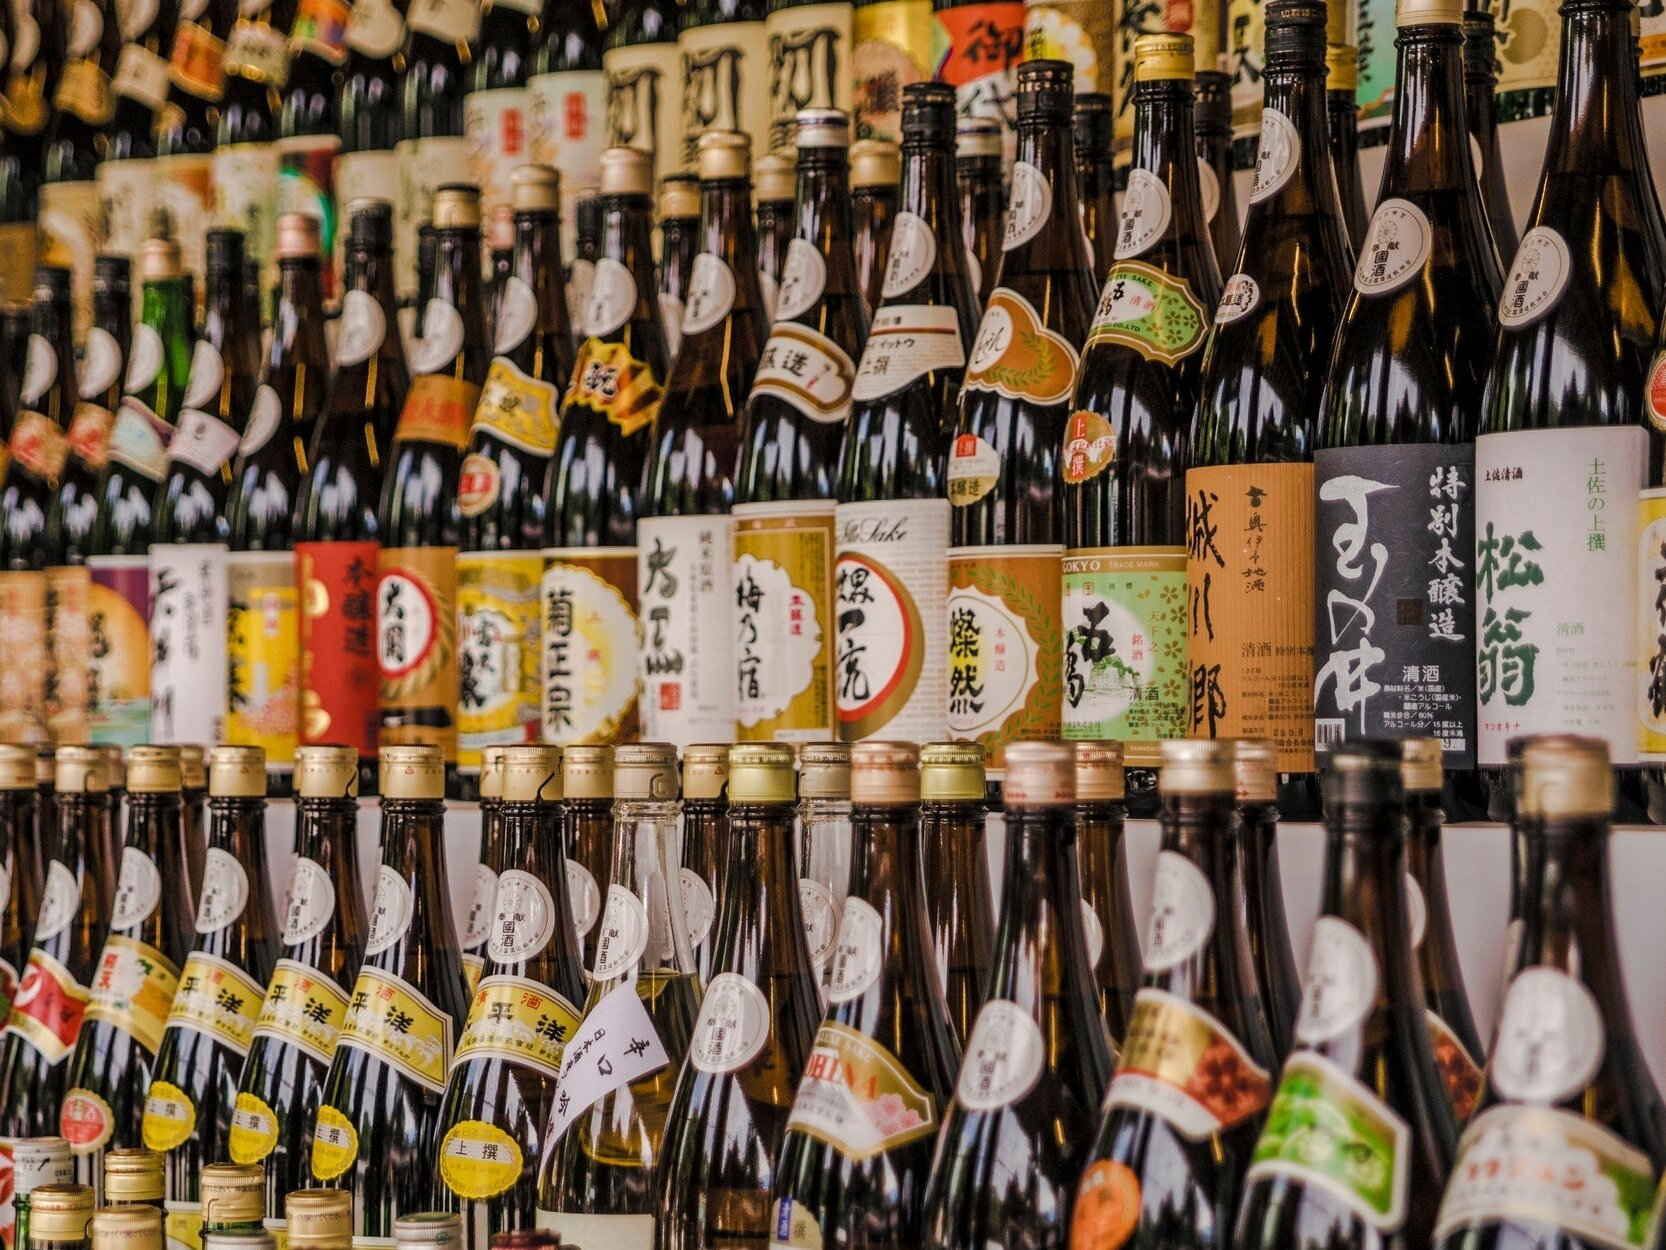 The Finest Bottles - Sommelier curated sakes from the best artisan breweries in Japan delivered straight to your door.